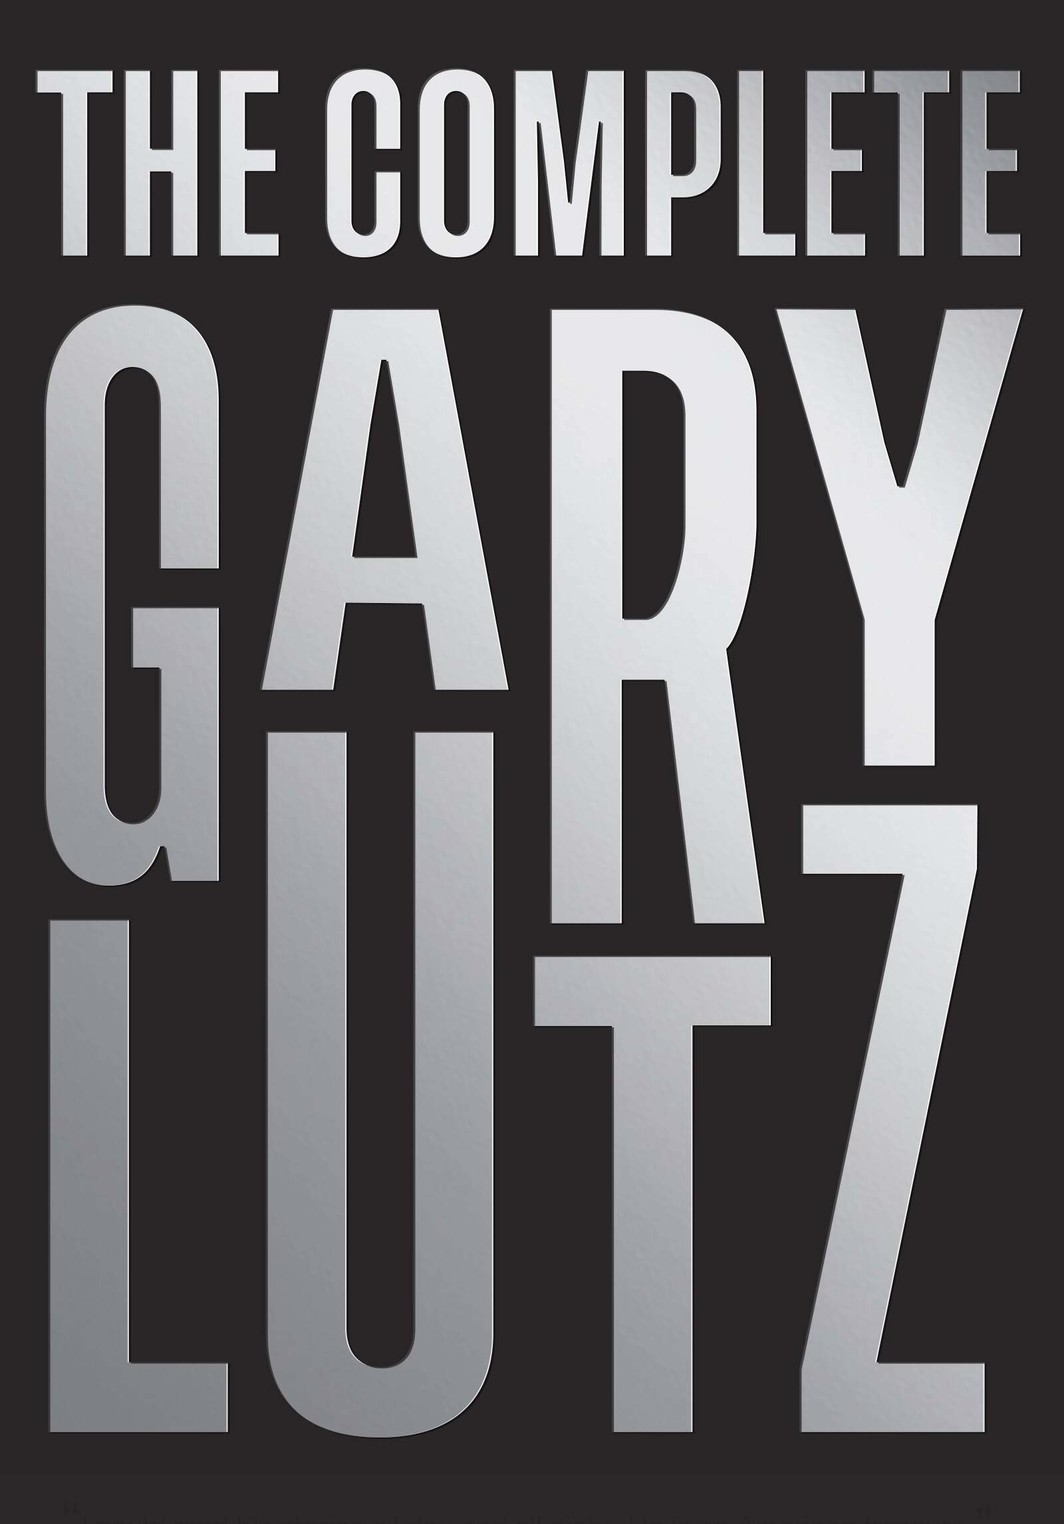 The cover of The Complete Gary Lutz